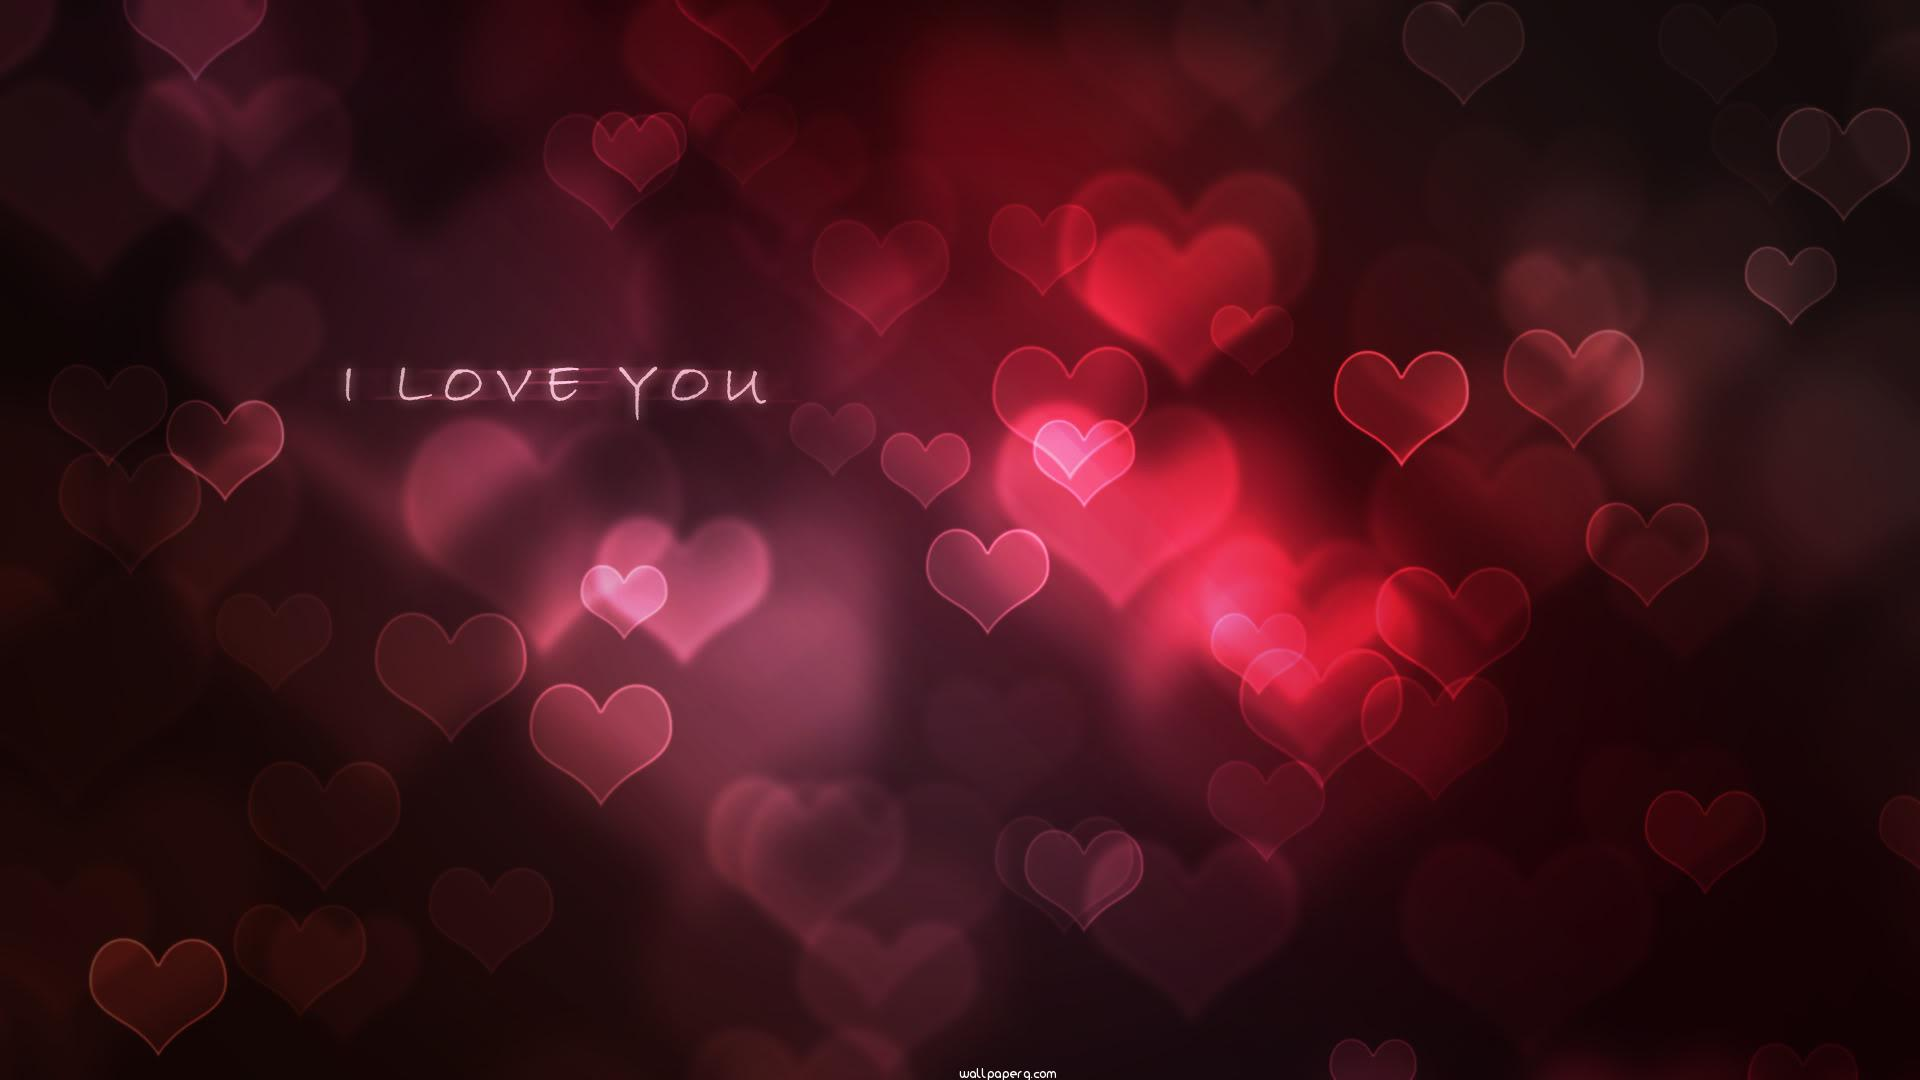 Red hearts background ima